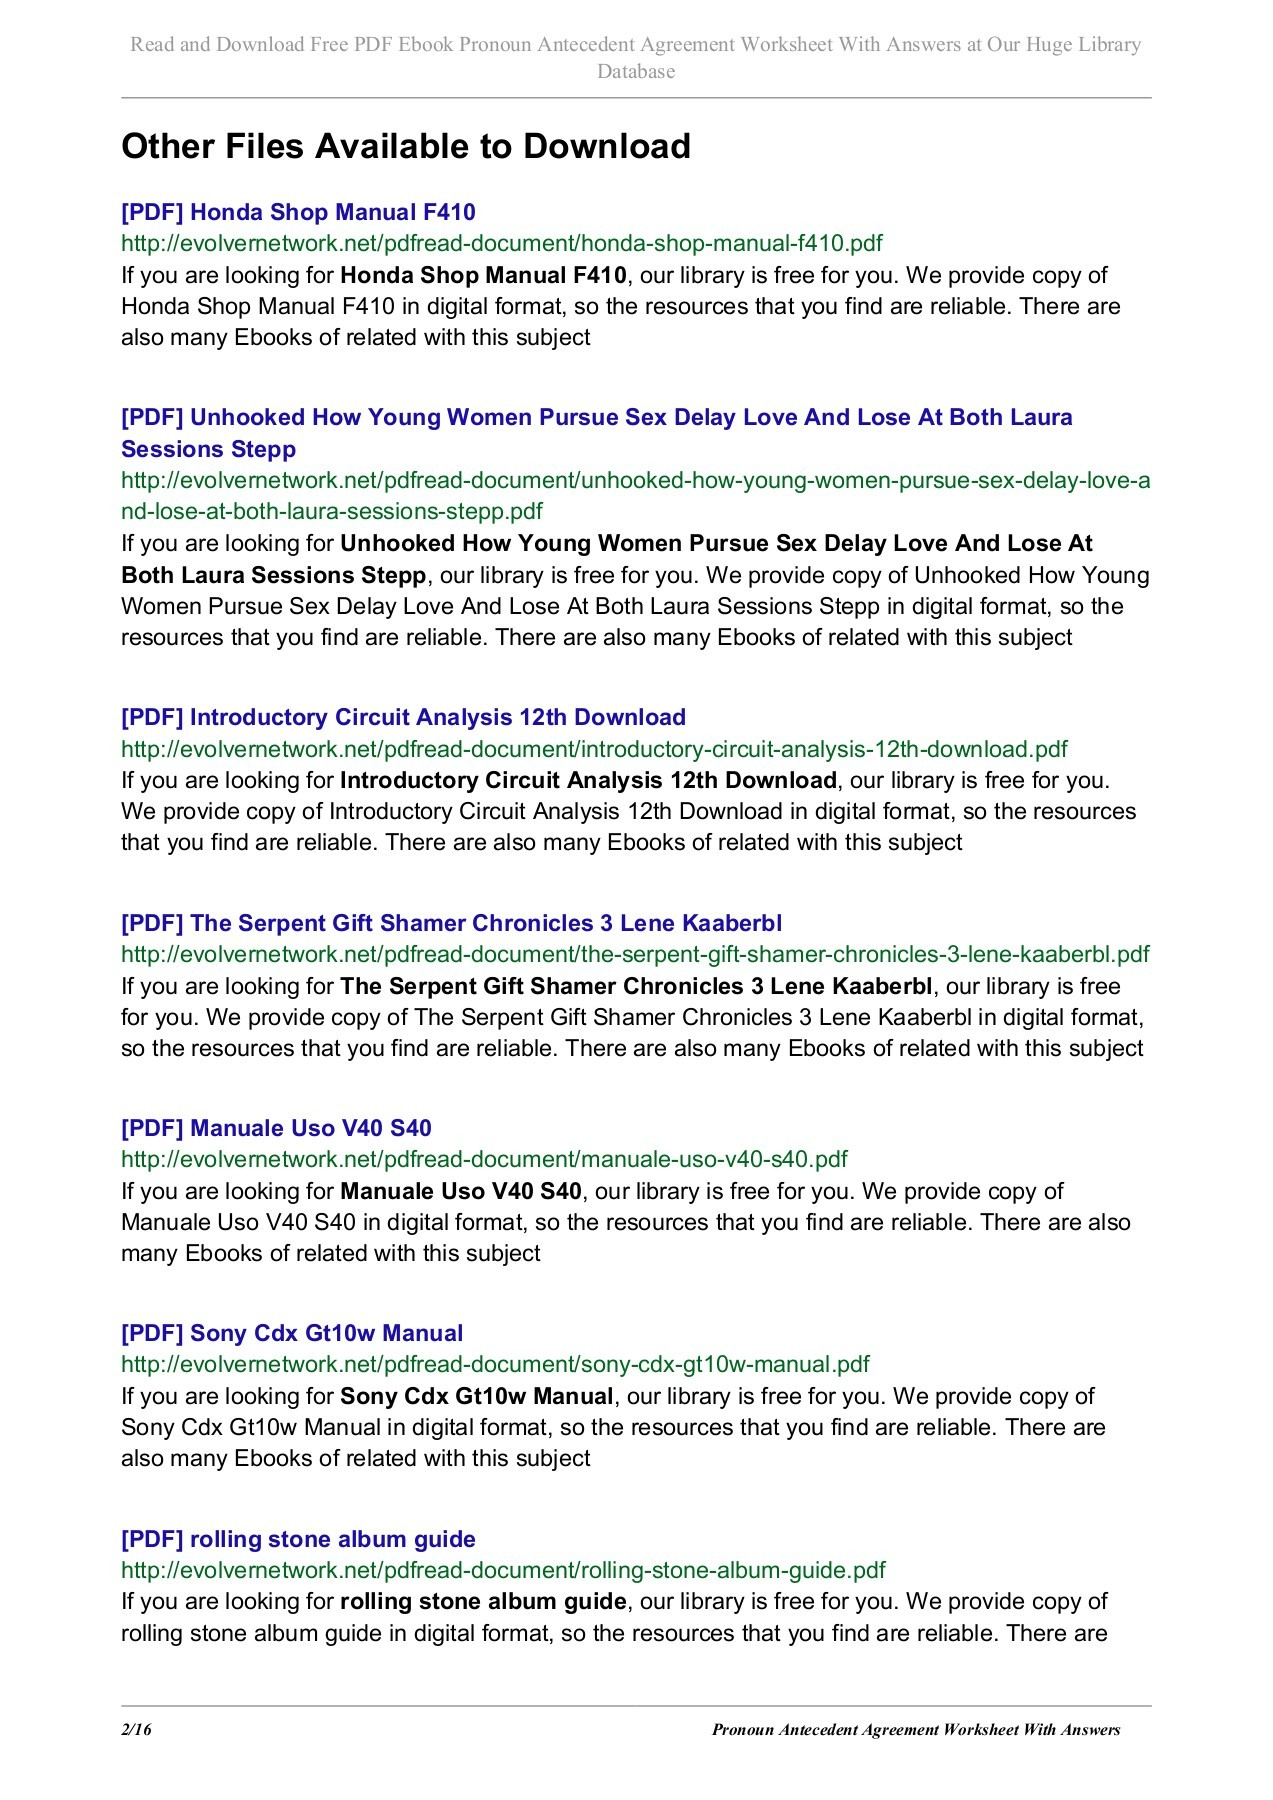 hight resolution of Pronoun Antecedent Agreement Worksheet - Promotiontablecovers